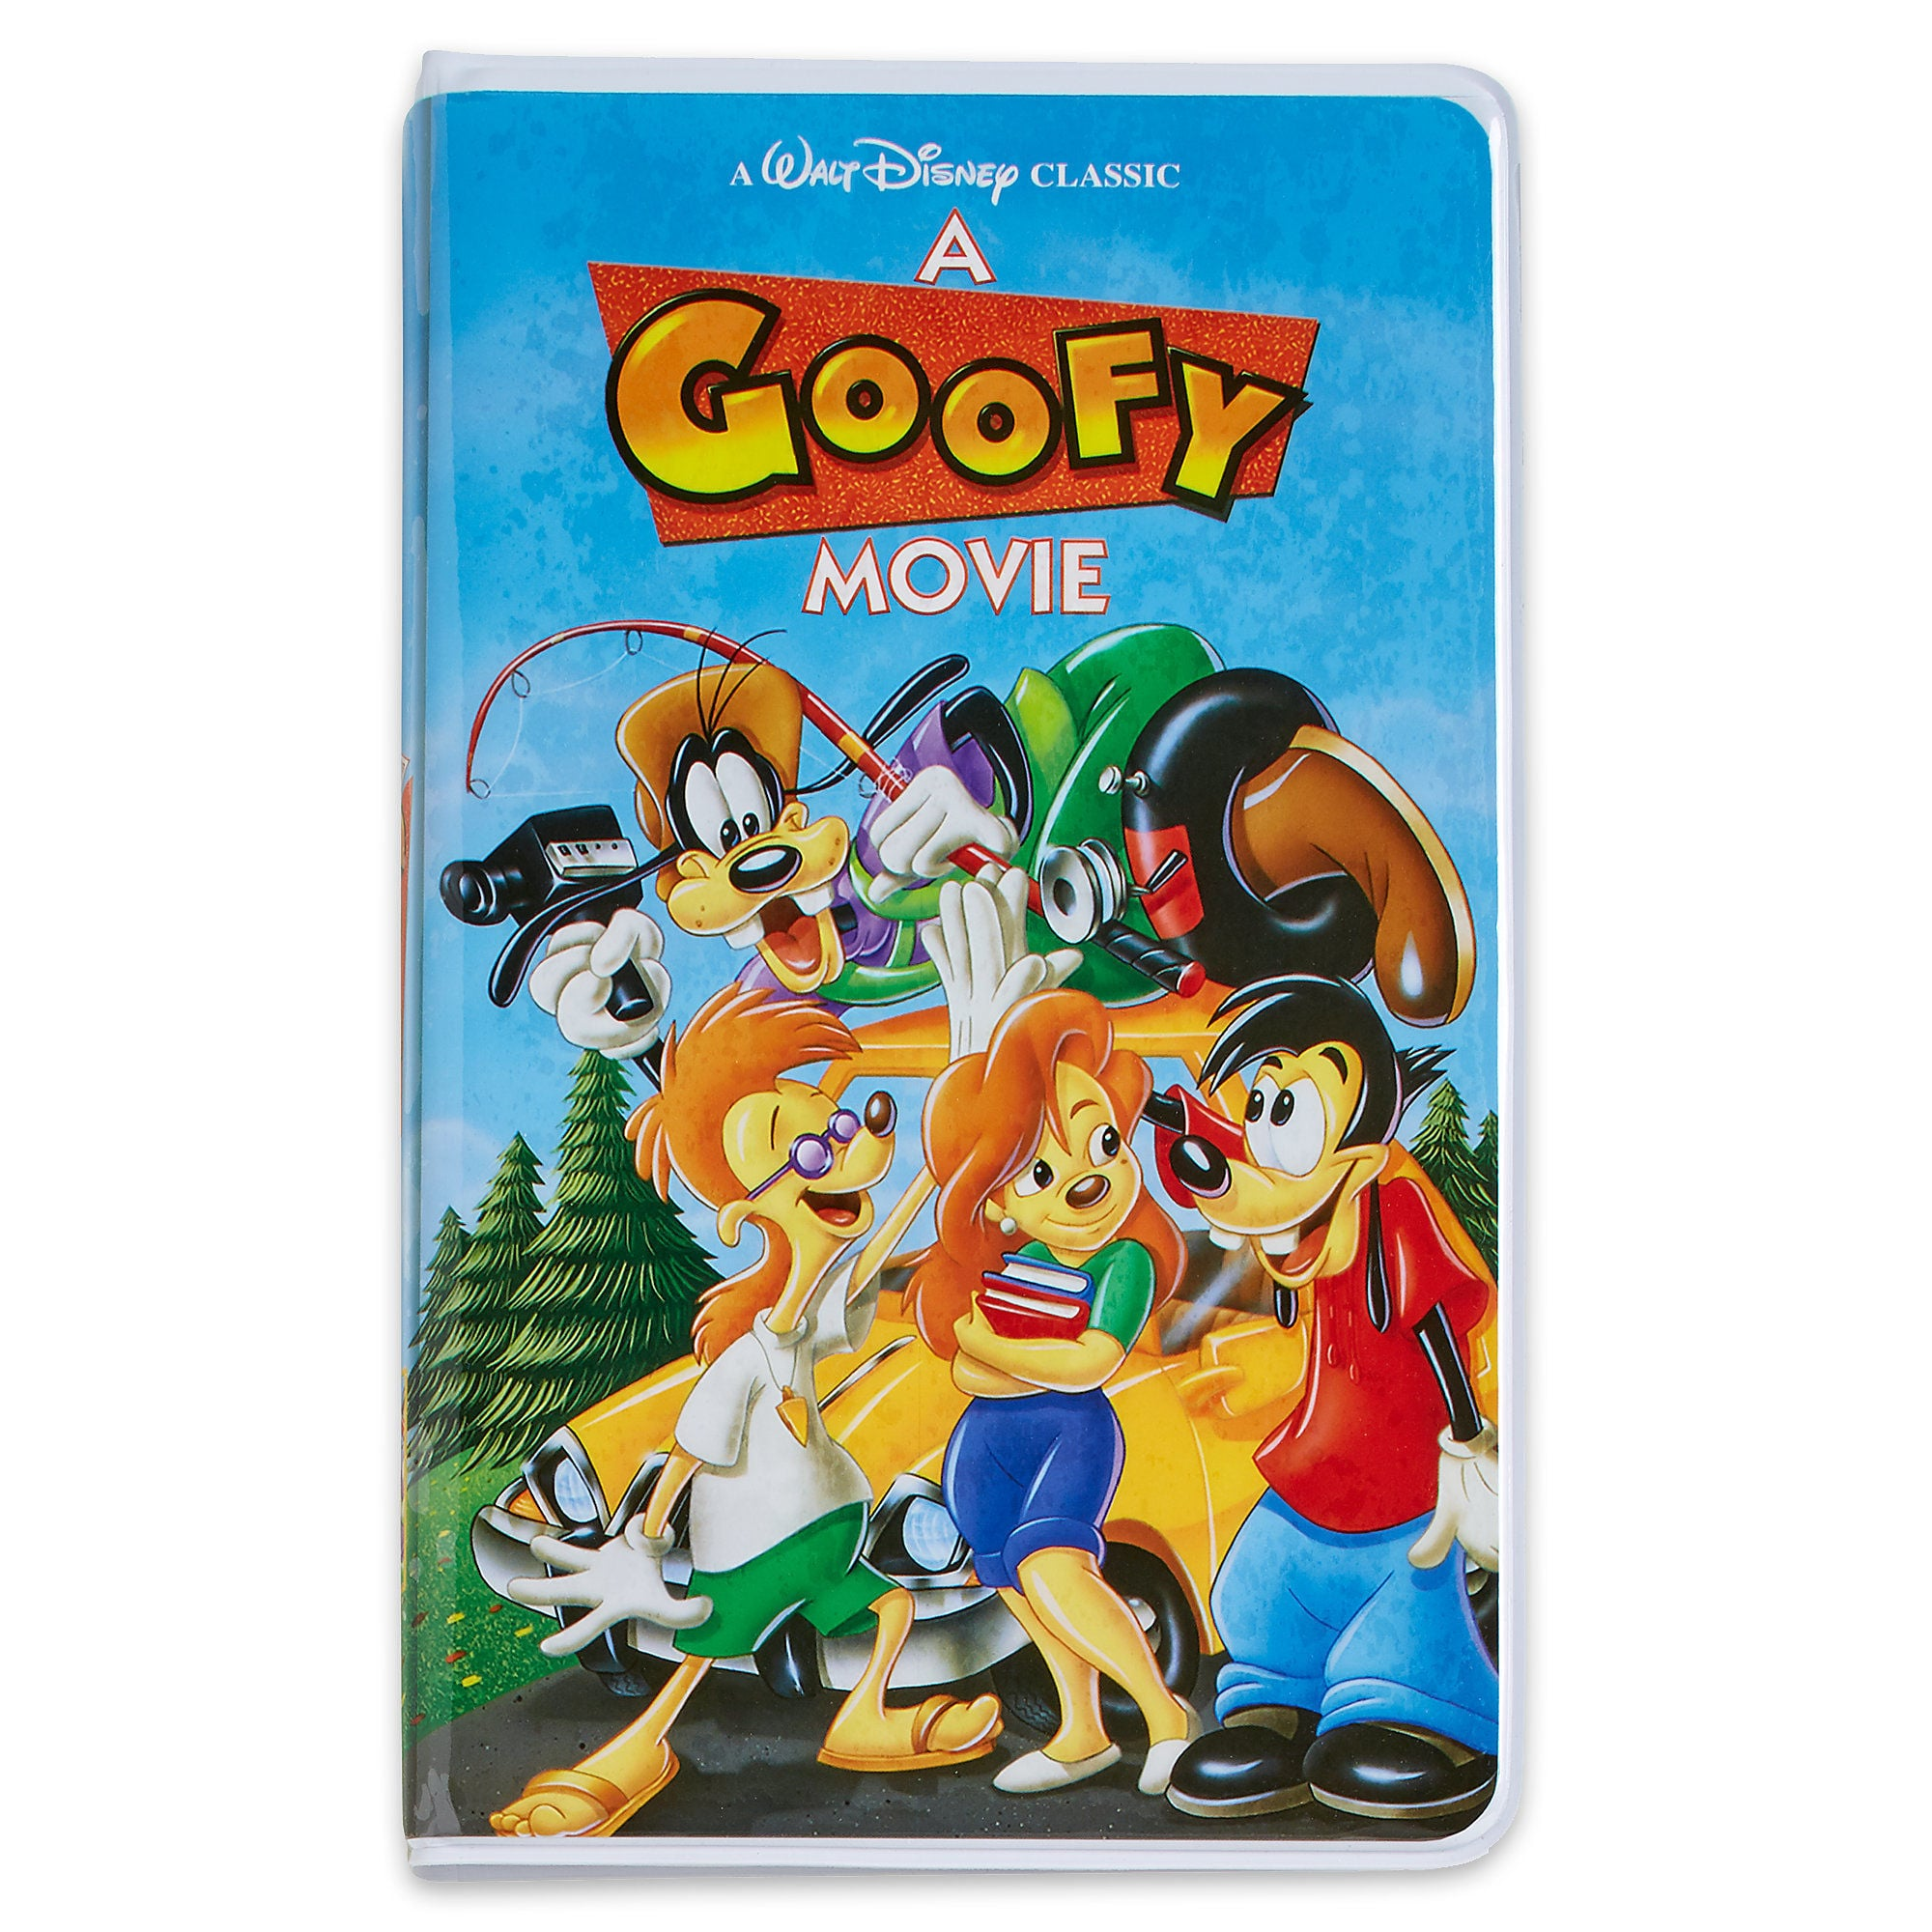 A Goofy Movie Vhs Case Journal Disney S 90s Collection Will Bring You Back To A Simpler Time Of Vhs And Multicolor Pens Popsugar Love Sex Photo 23